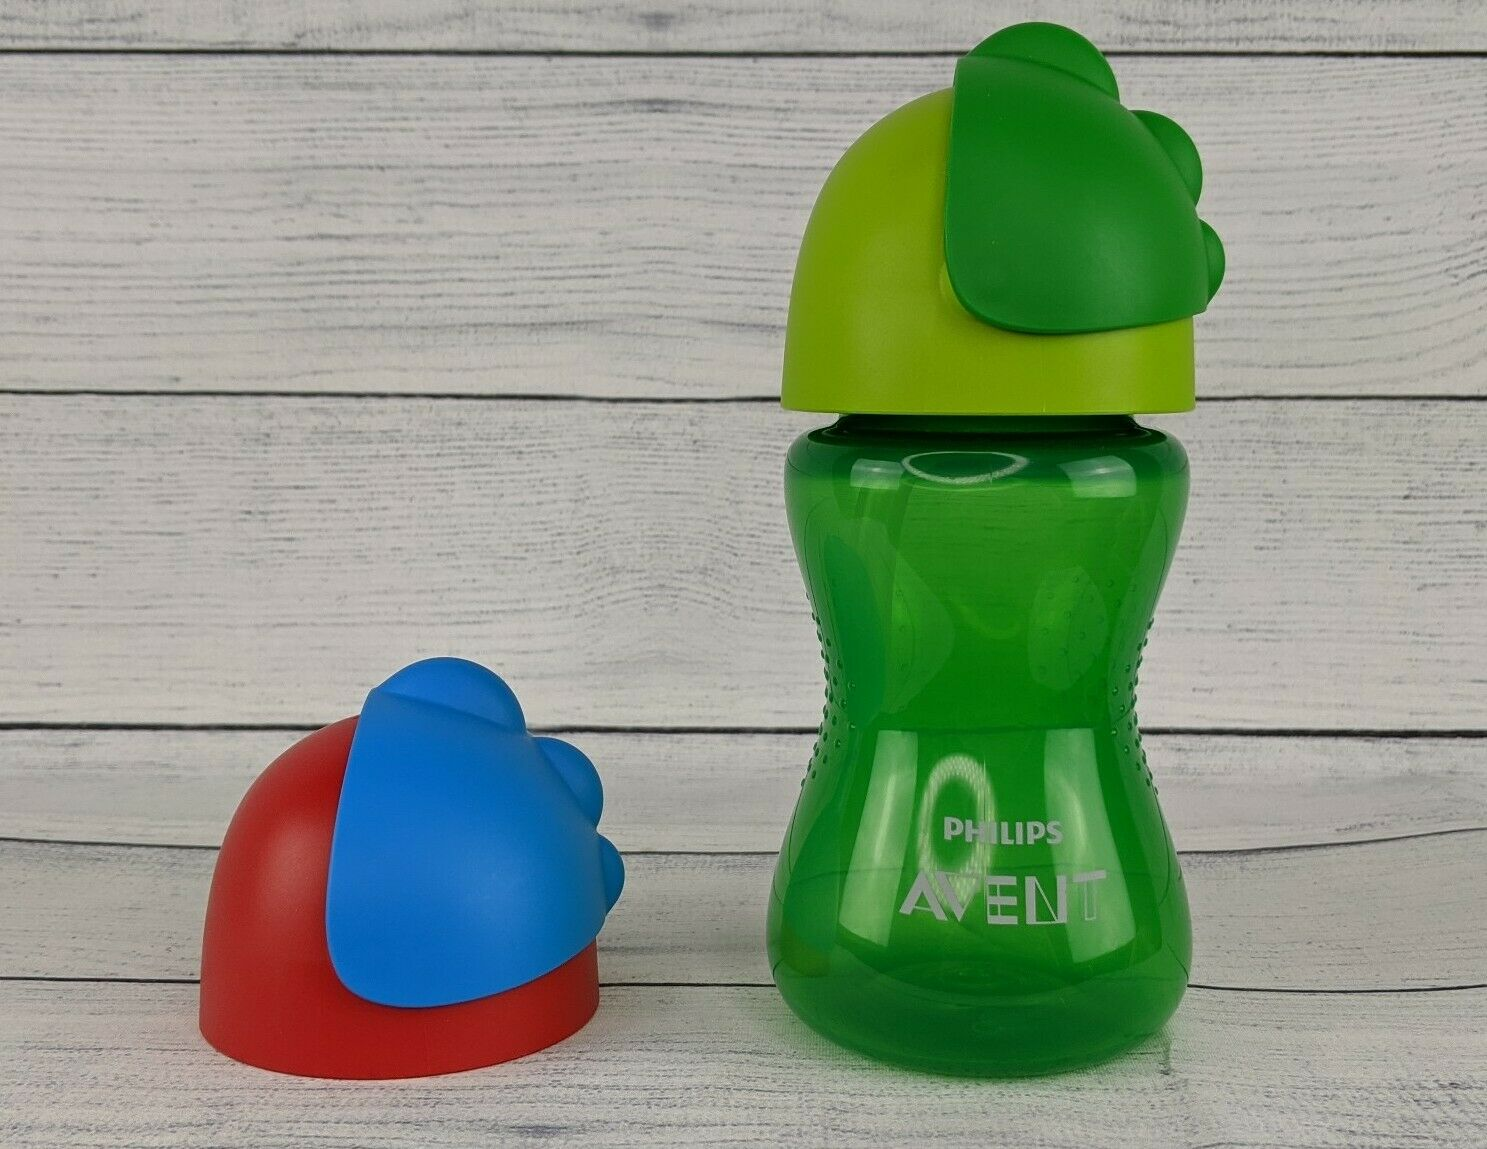 4 Pack Phillips Avent My Bendy Straw Drinking Cup 7 oz Assorted Colors